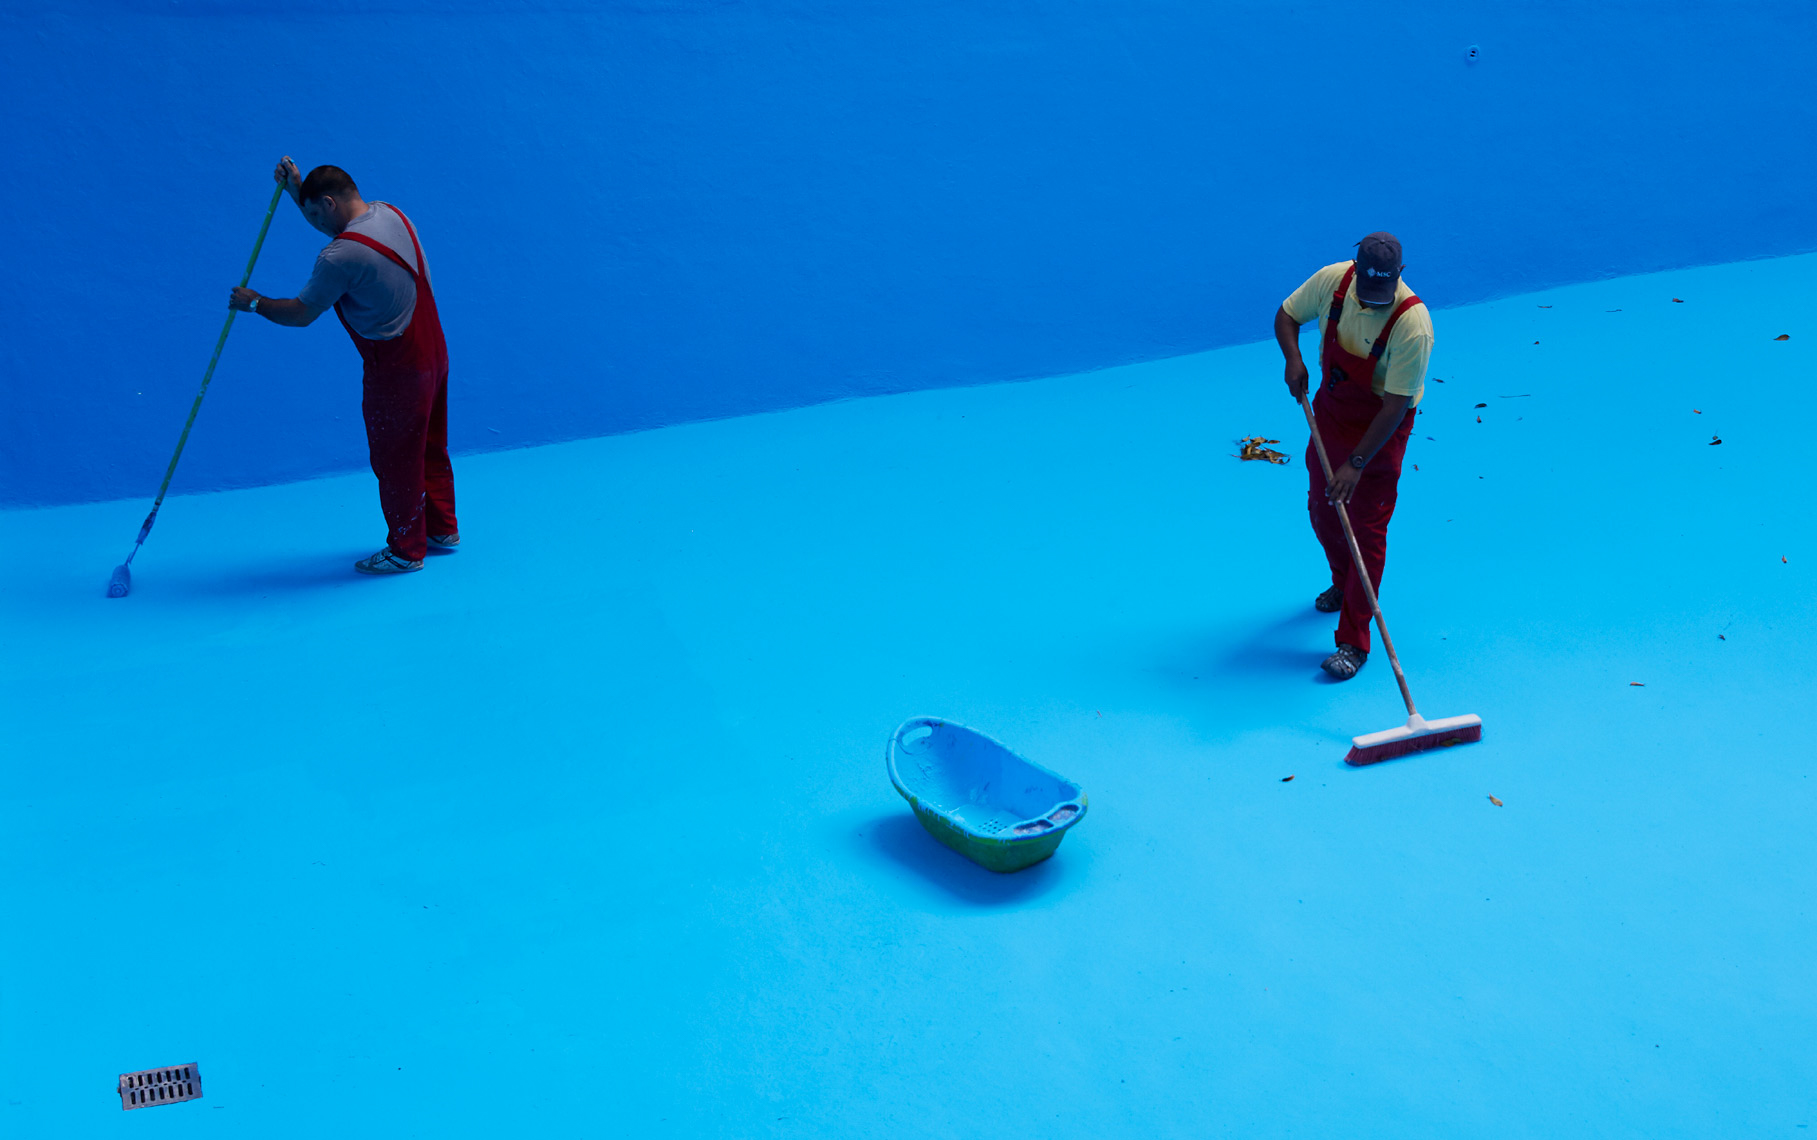 workers in red overalls painting large pool bright blue